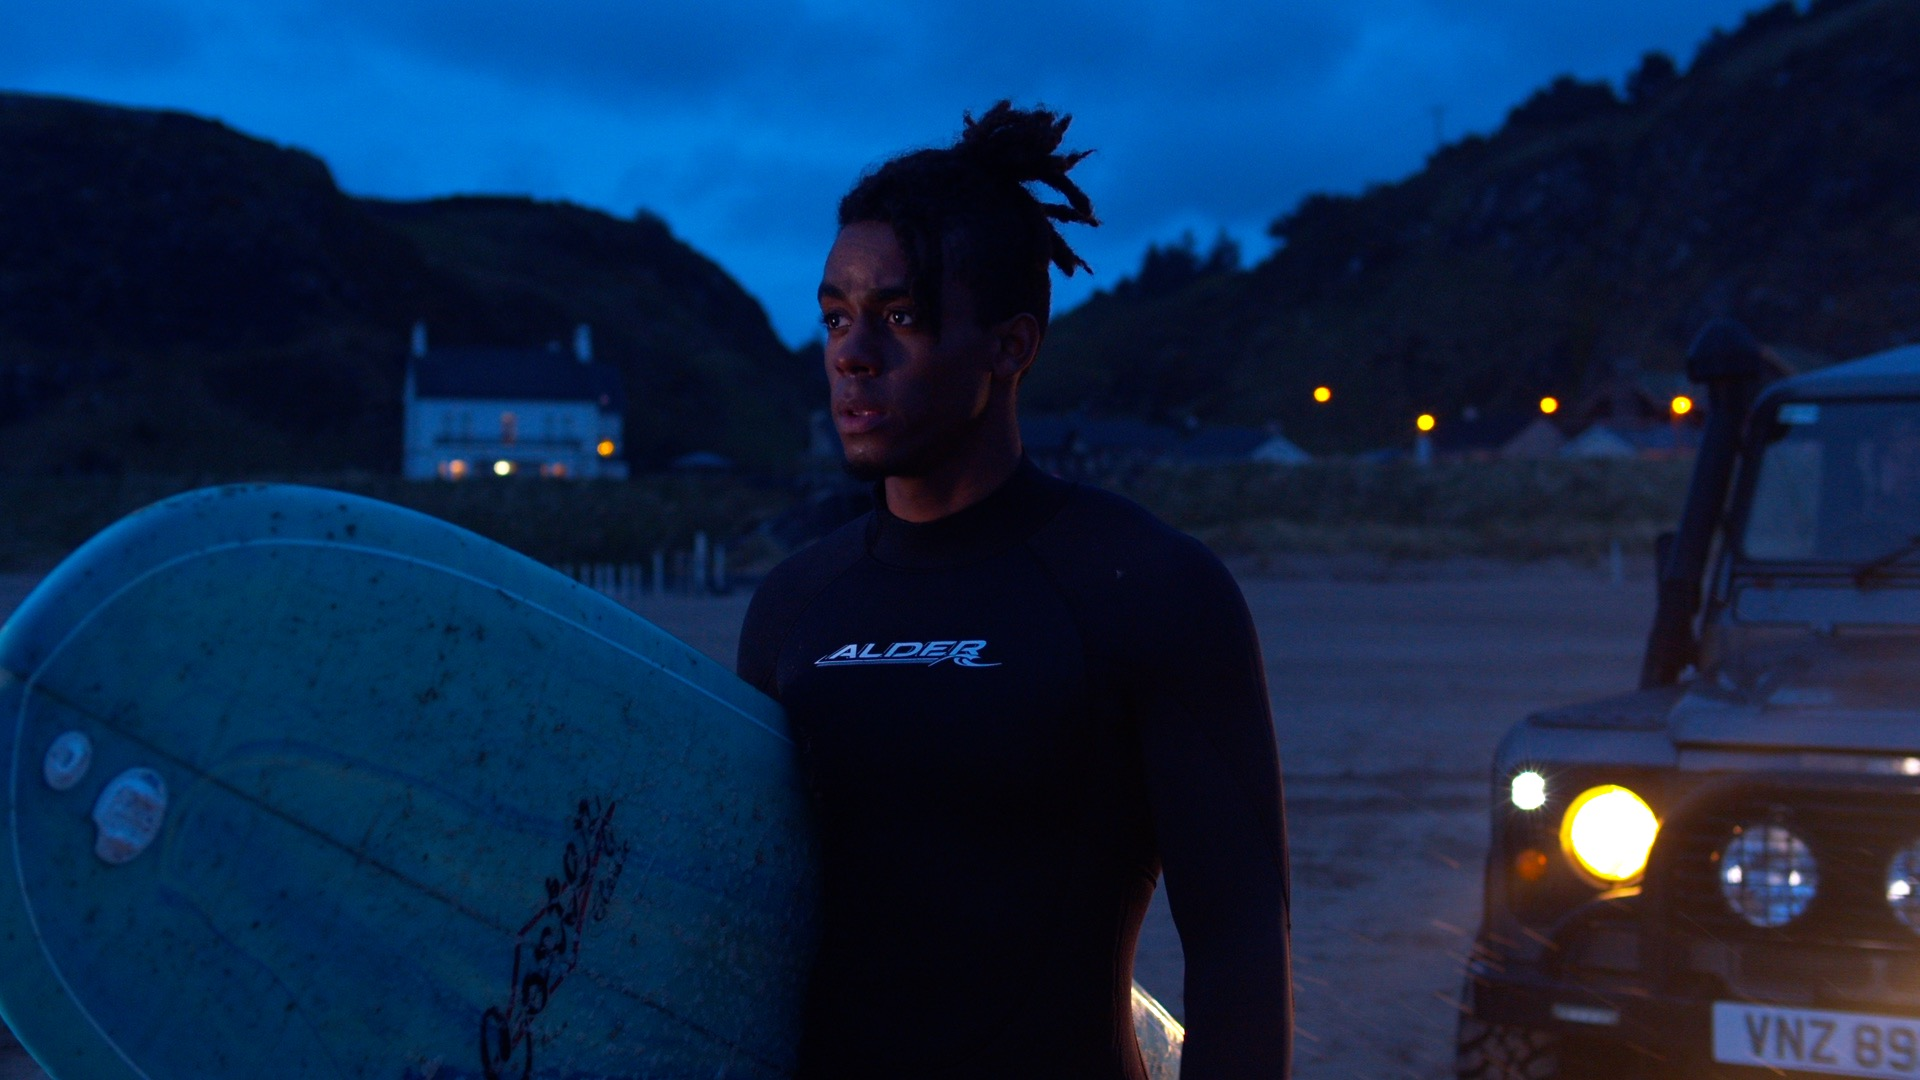 I did a short doc about the The Surf Project and the footage/story was  repurposed as a brand story for Alder , who sponsors all the wetsuits for the surf school. (This is why I say that corporate brands and organizations are both wanting  documentary storytelling )